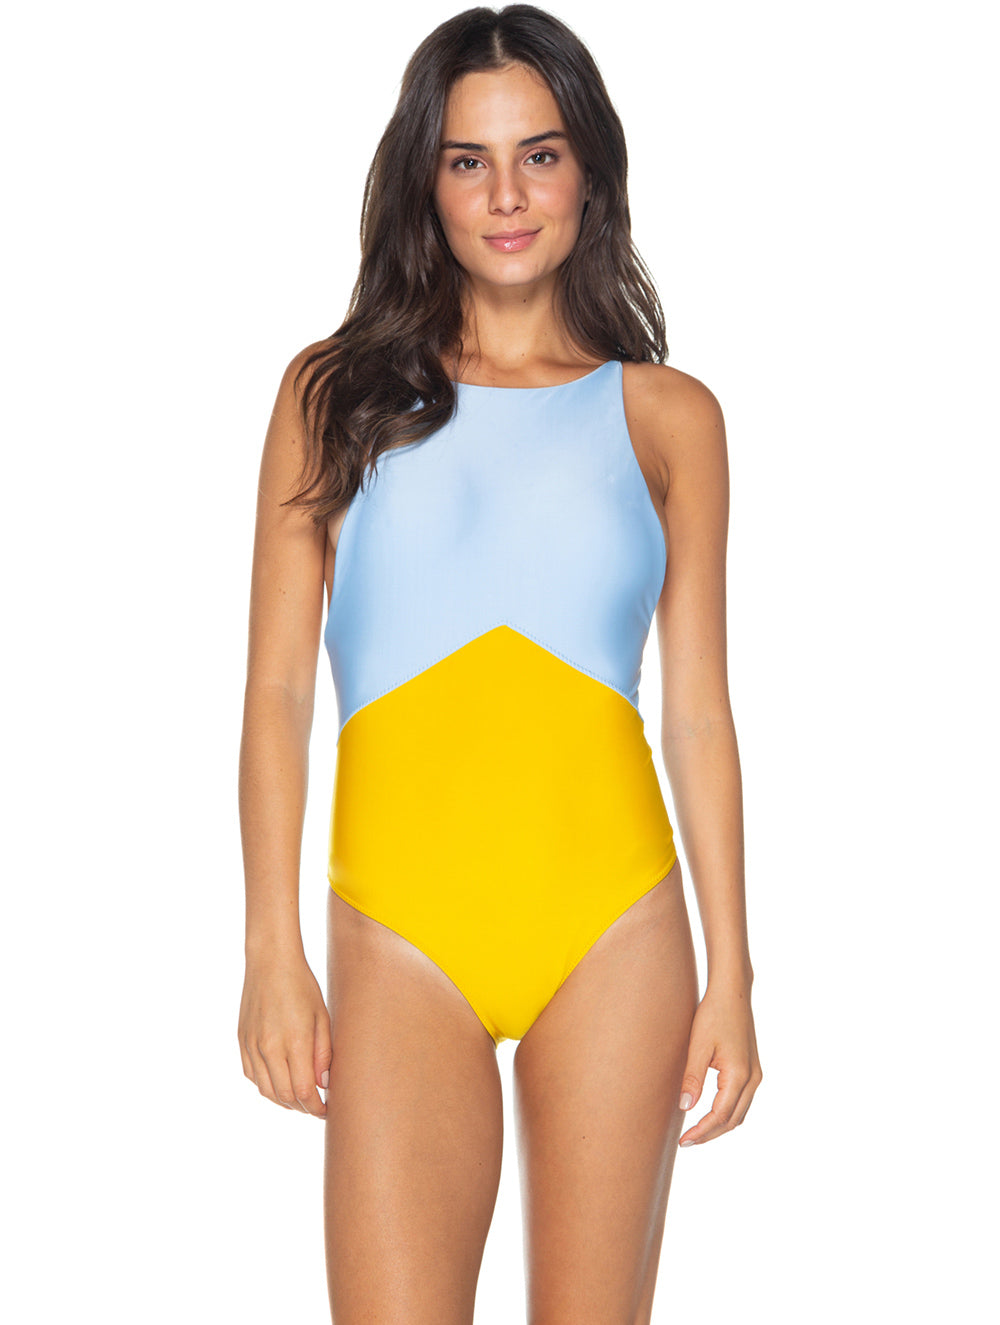 Miami Halter top One-piece with opening in back